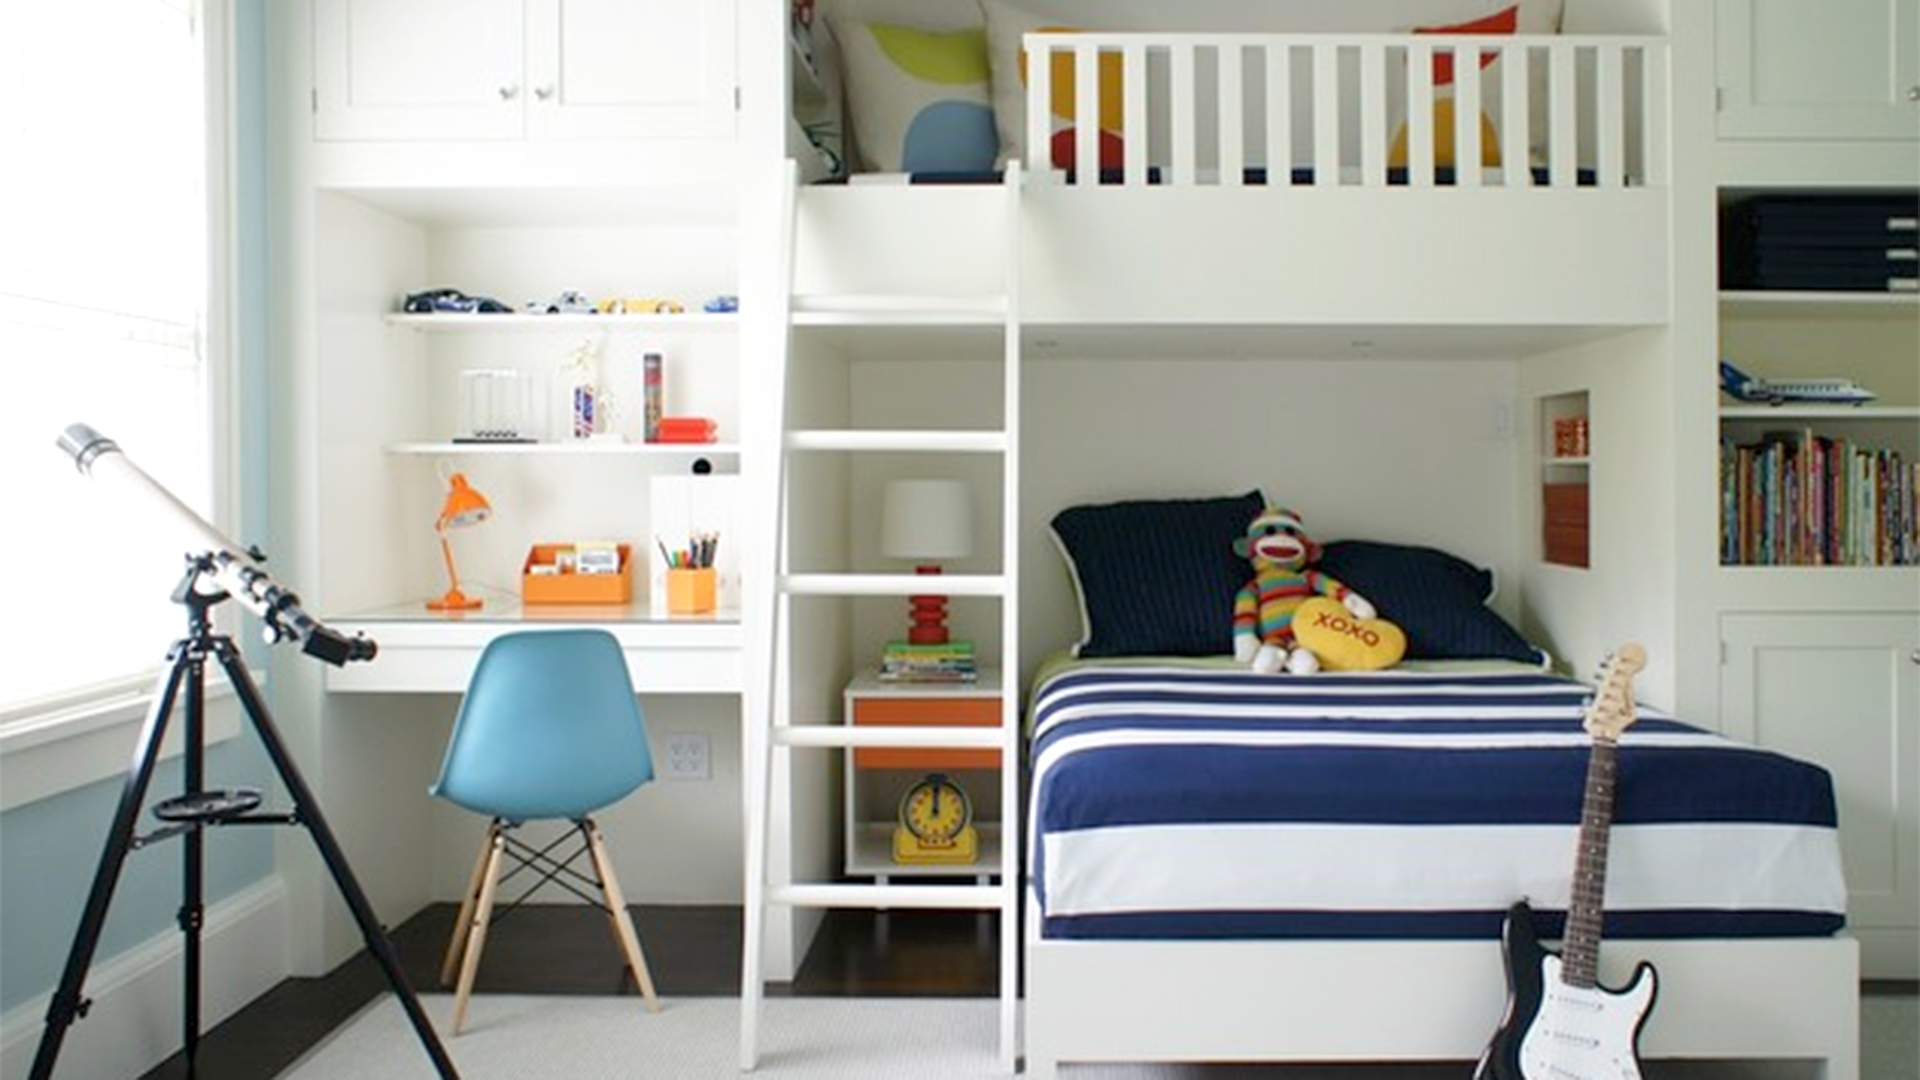 6 Creative Built-in Ideas For Kids' Rooms